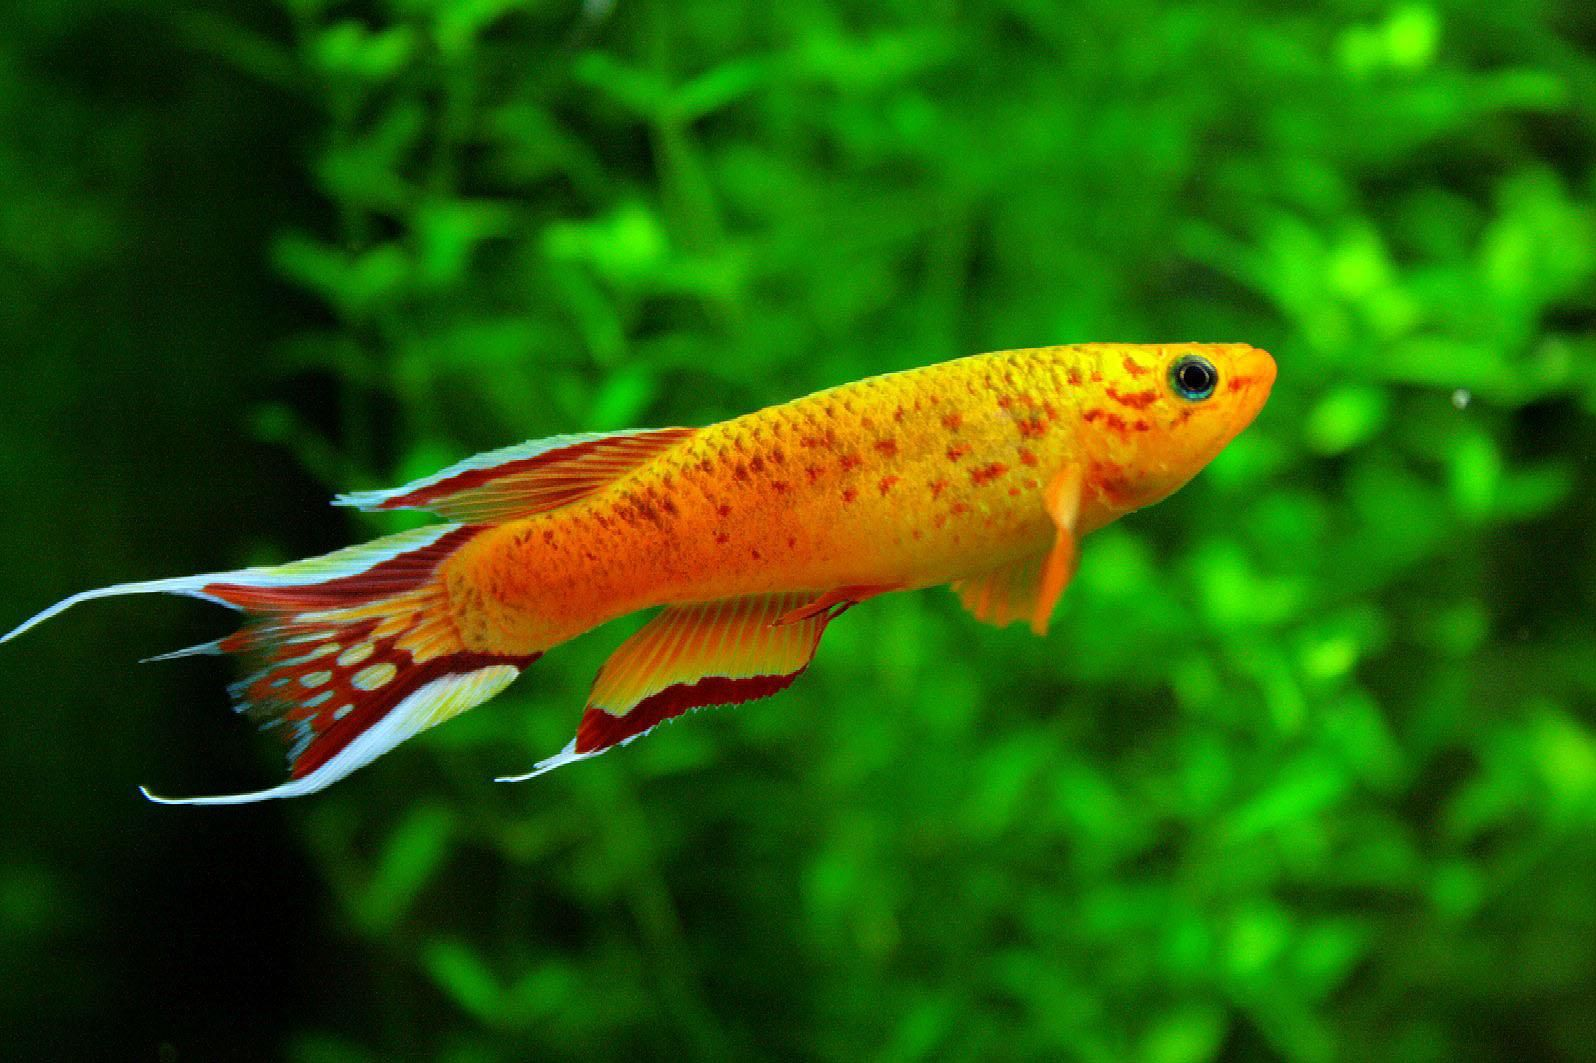 Freshwater fish tank yellow water - Freshwater Fish Tropical Discussion Tropical Fish Forums Wallpaper